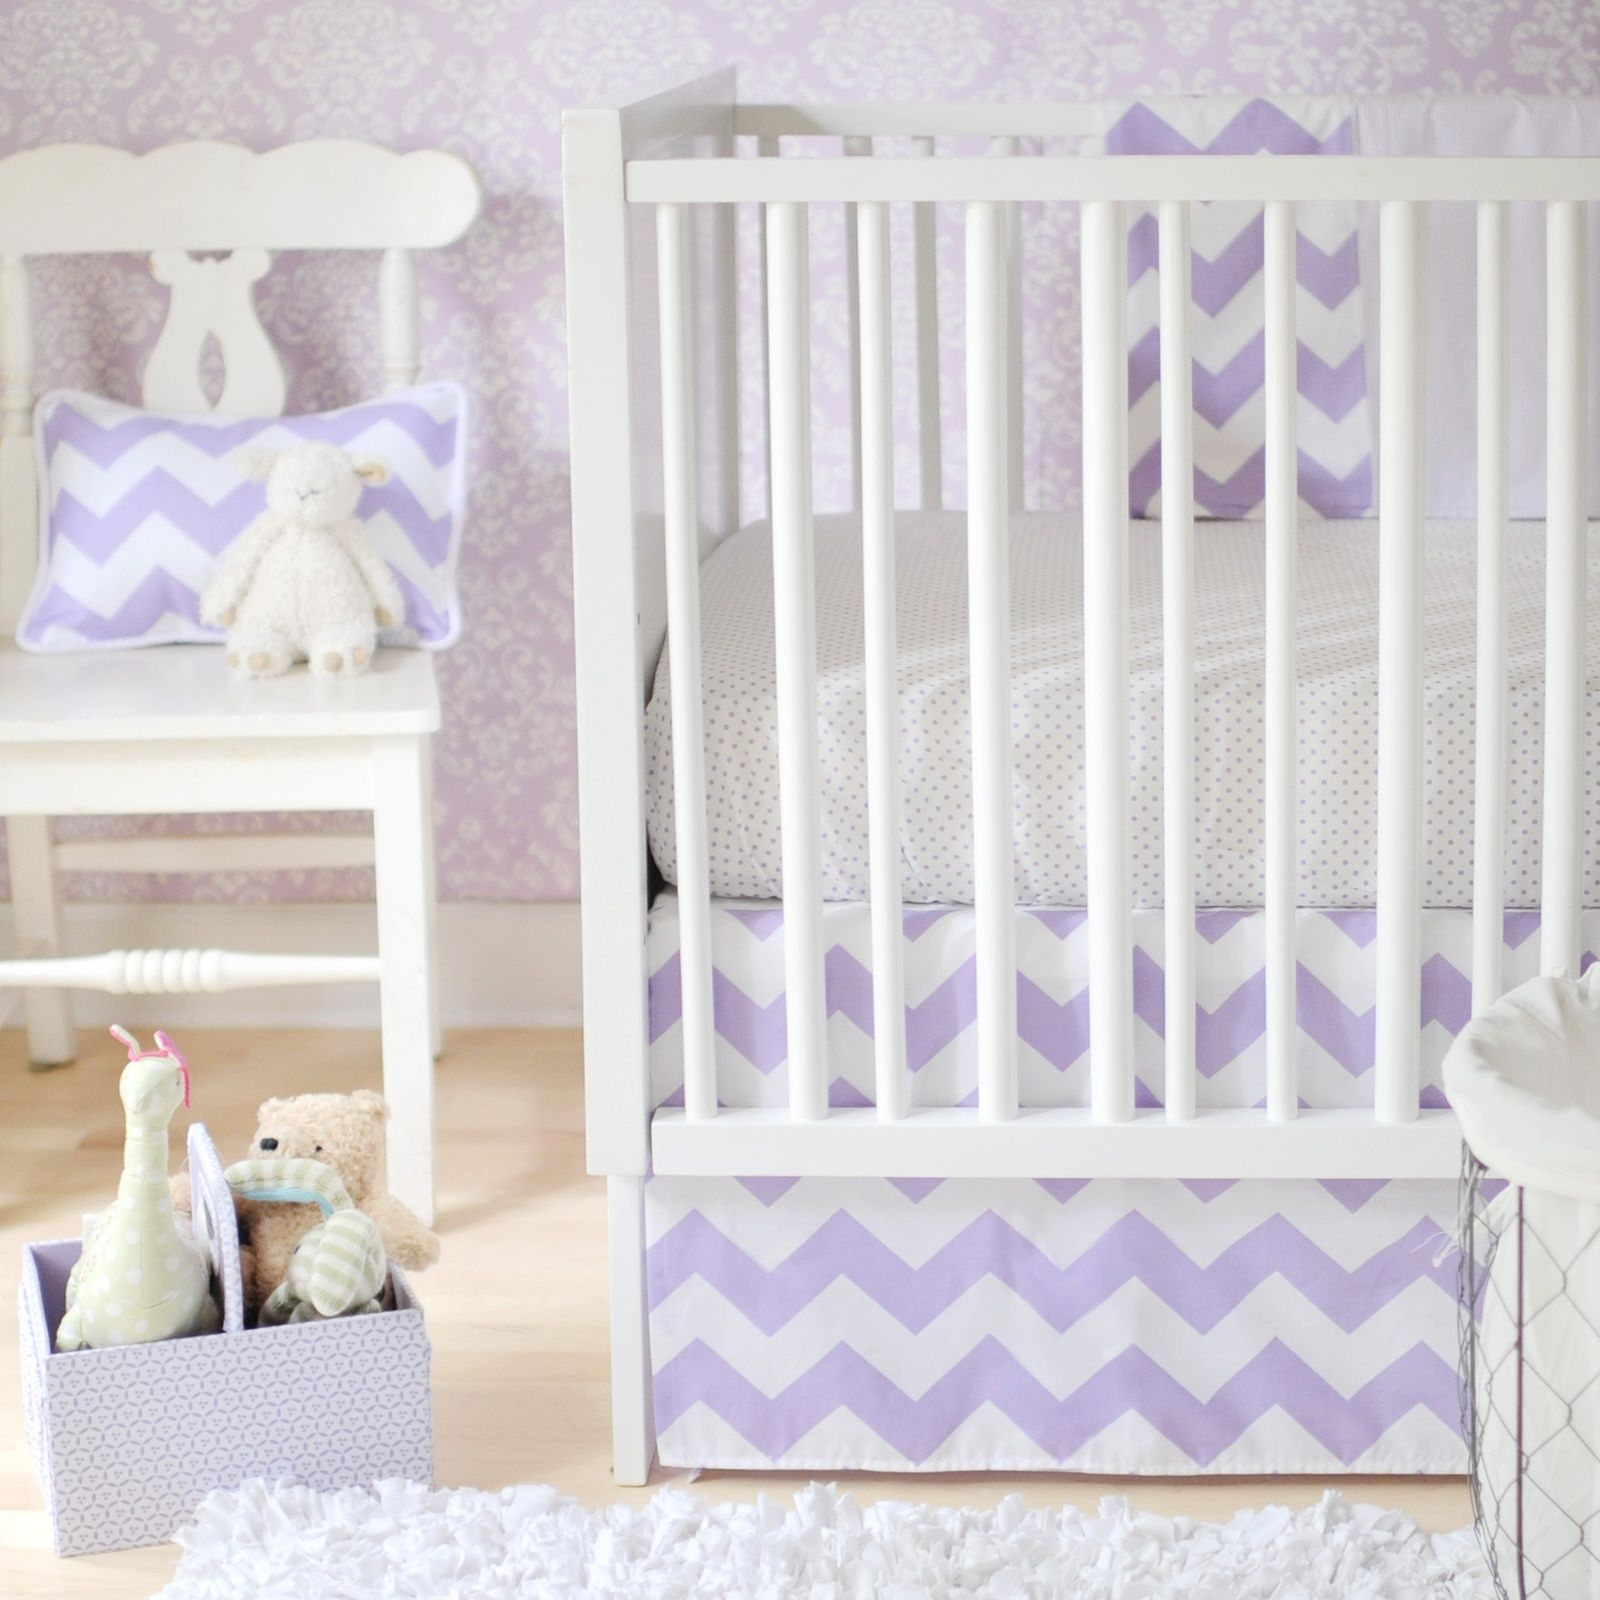 Chevron Zig Zag Baby Lavender Crib Bedding Set by New Arrivals Inc. purple baby bedding nursery